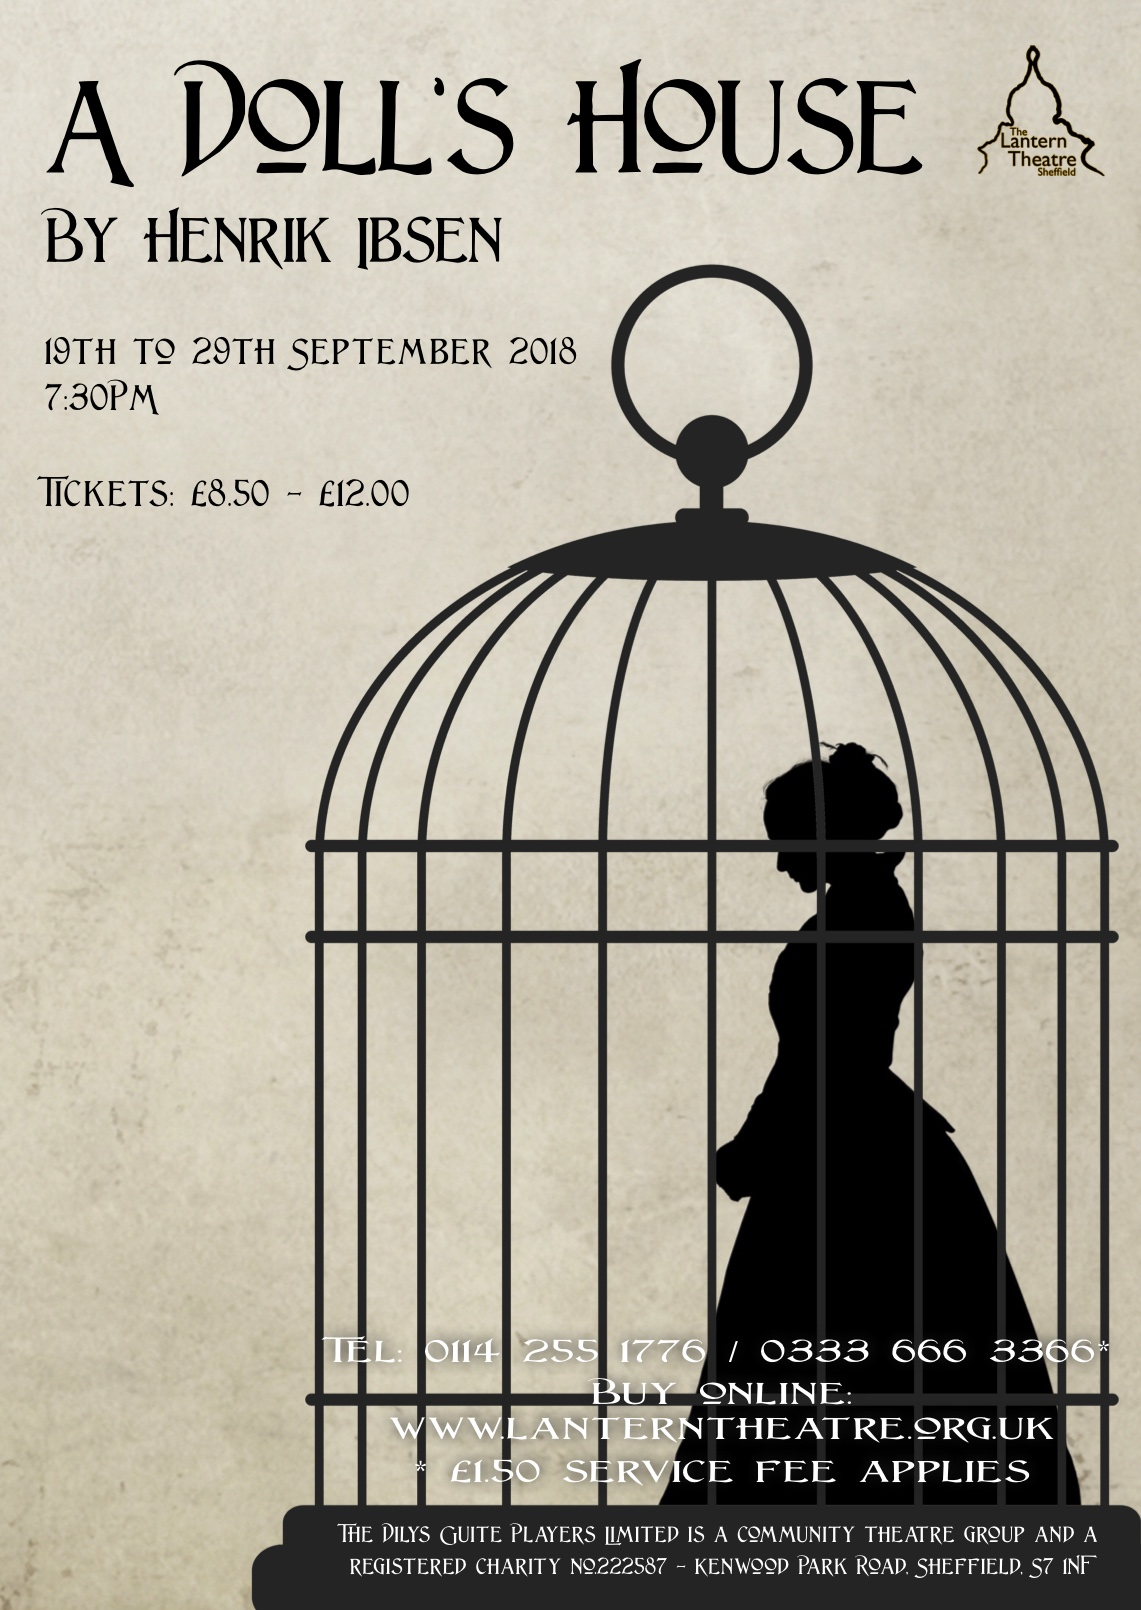 A Dolls House At The Lantern Theatre Event Tickets From TicketSource